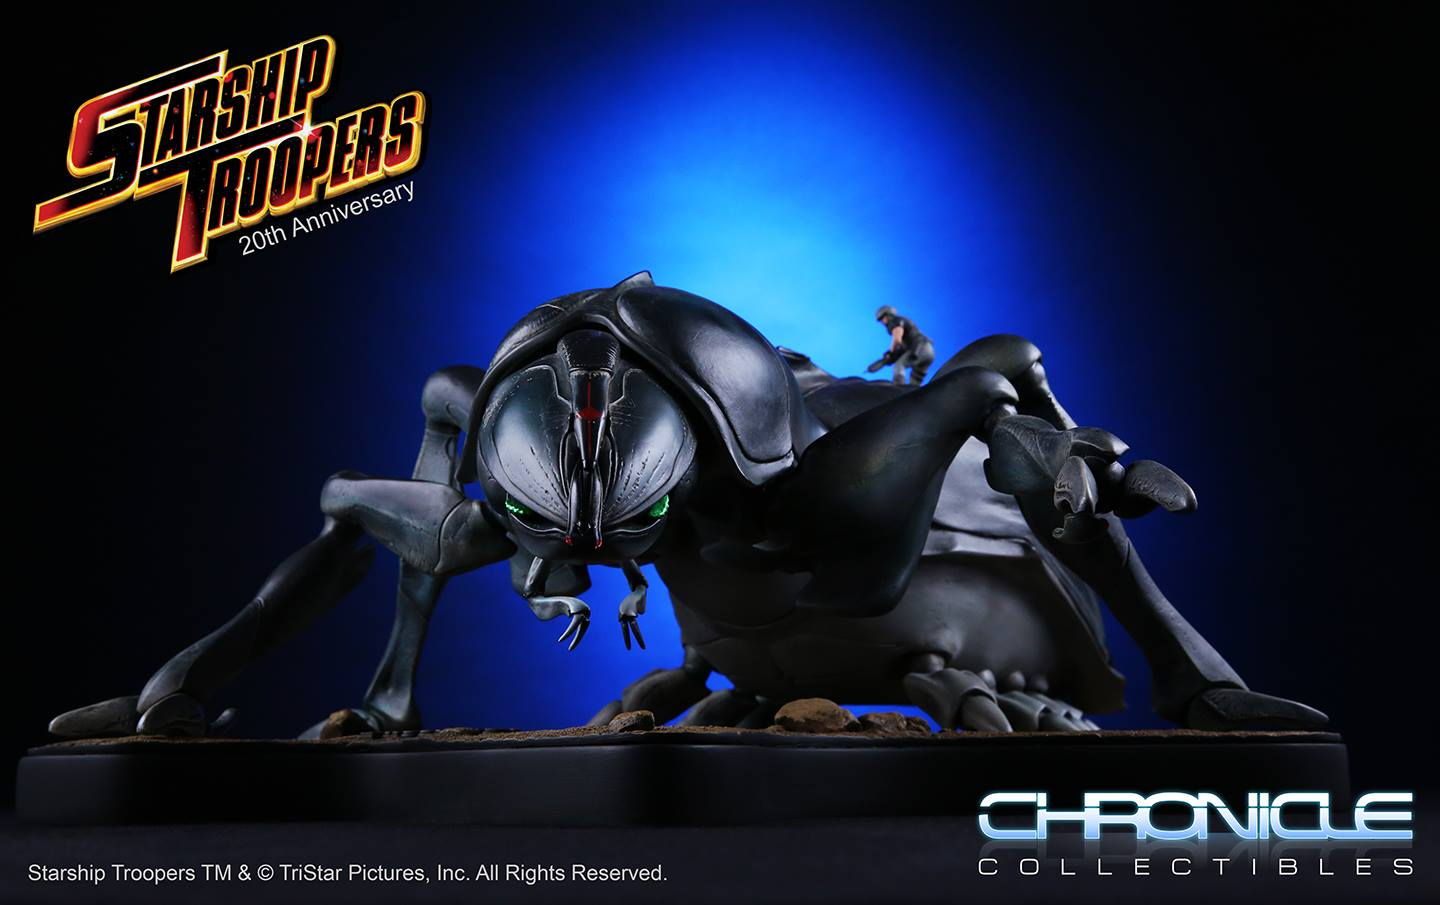 Chronicle Collectibles Starship Troopers Tanker Bug Maquette